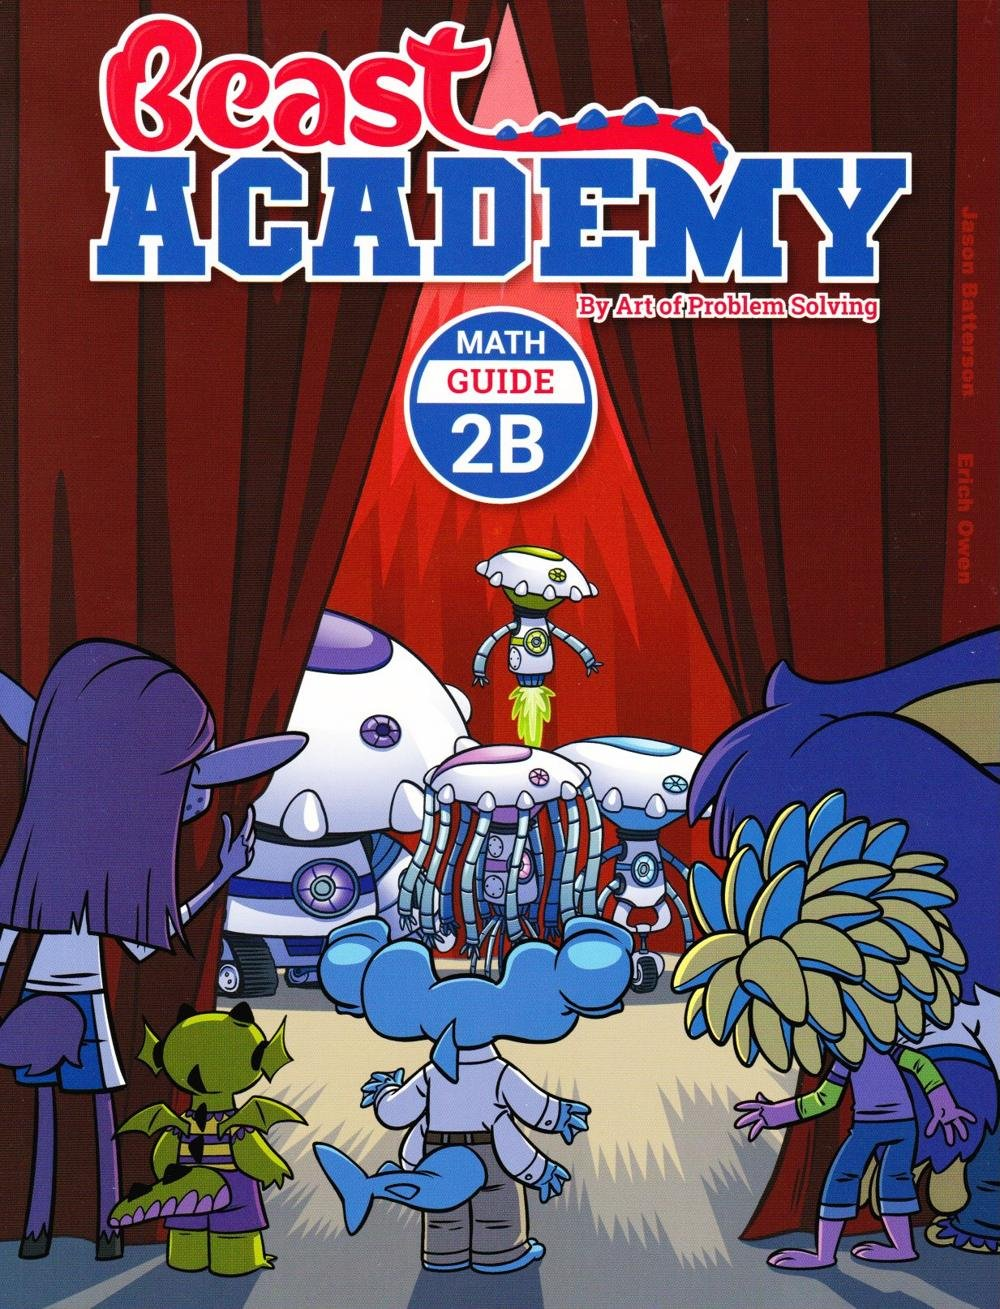 AoPS 2-Book Set : Art of Problem Solving Beast Academy 2B Guide and Practice 2-Book Set pdf